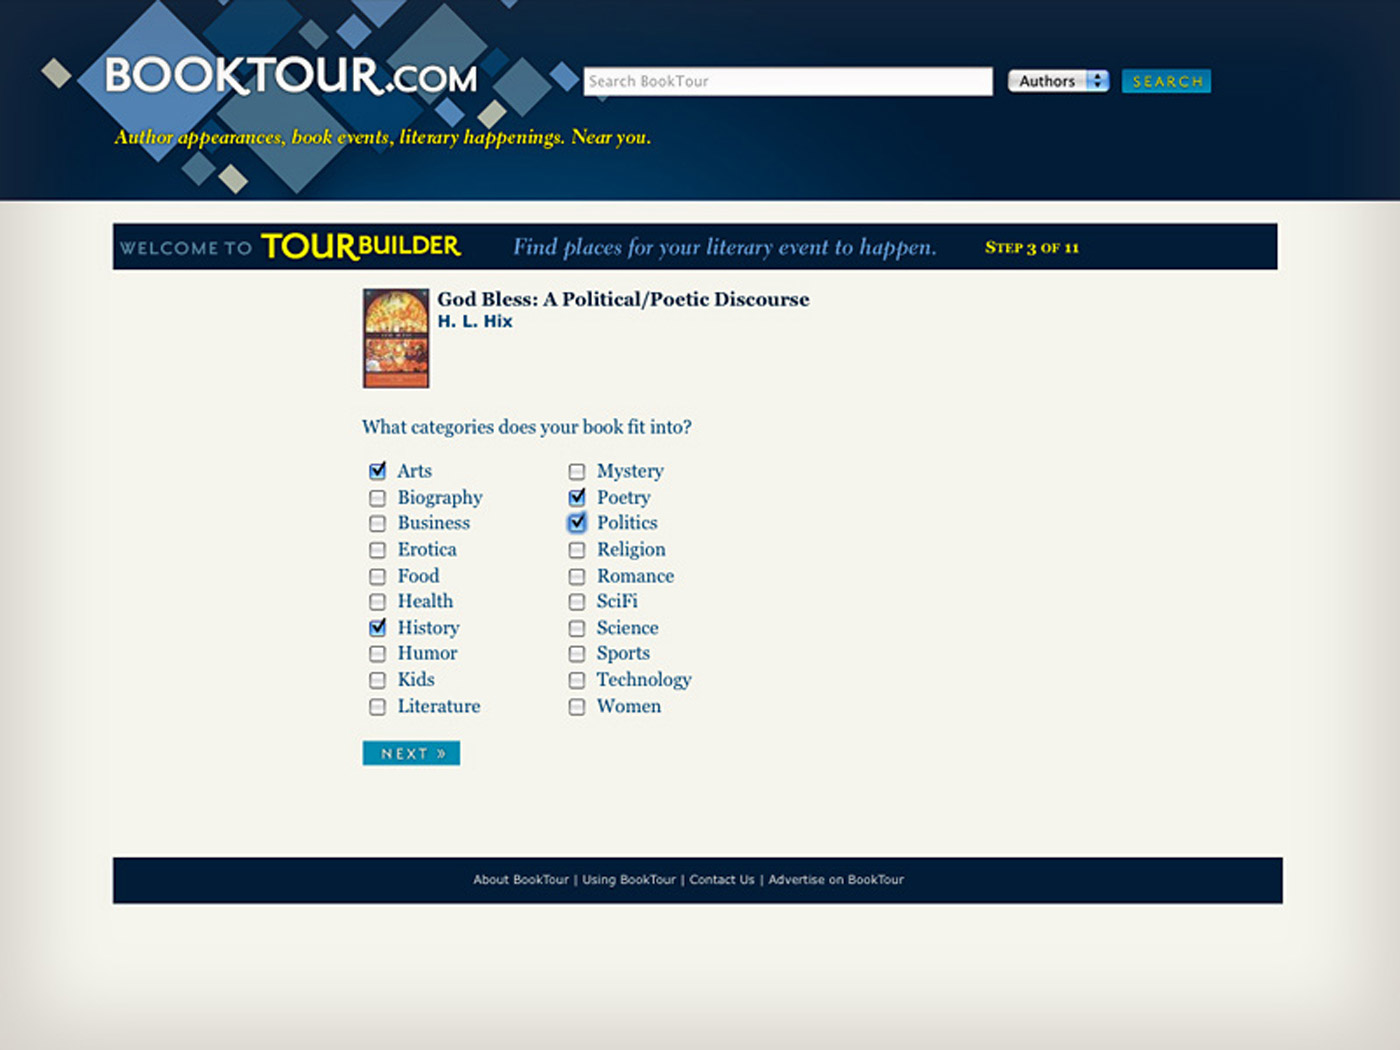 Booktour.com TourBuilder page